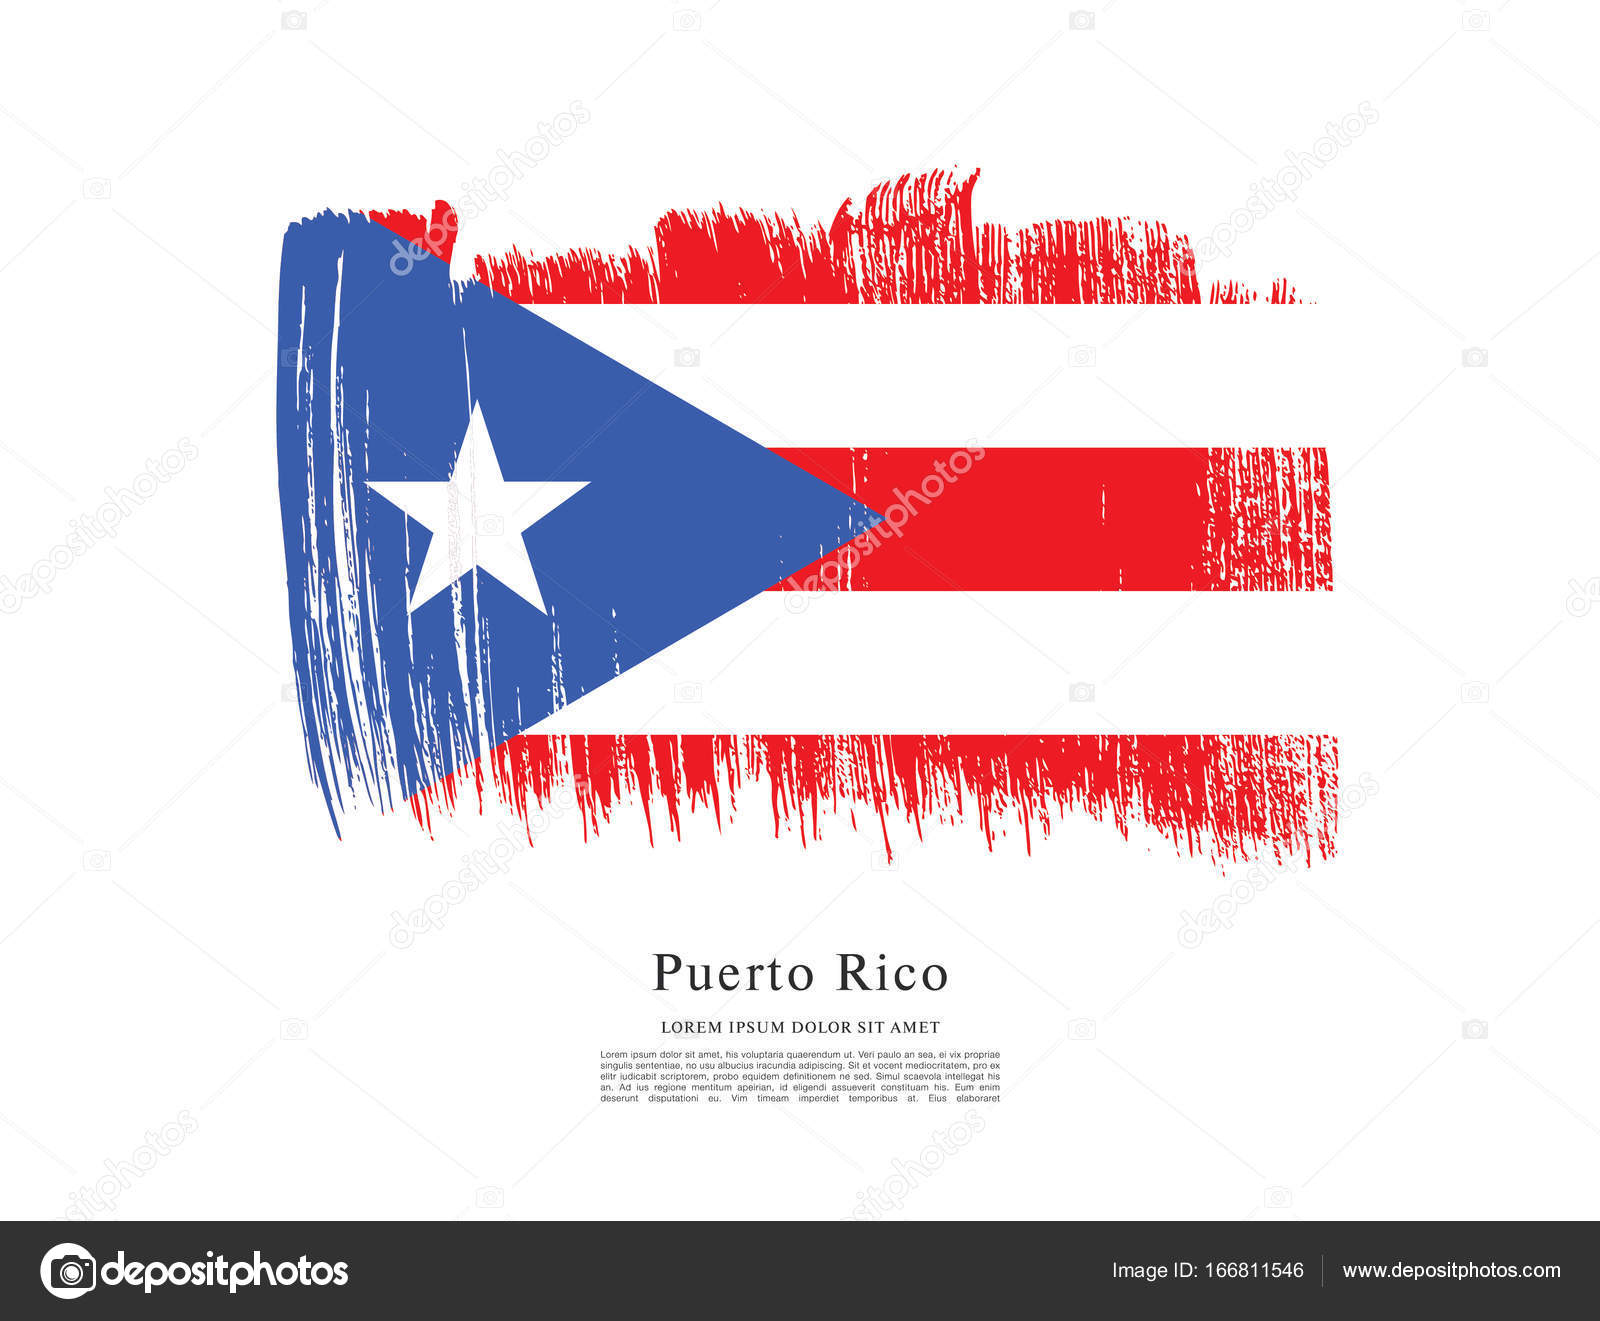 Flag of puerto rico flag stock vector igorvkv 166811546 flag of puerto rico flag stock vector biocorpaavc Image collections